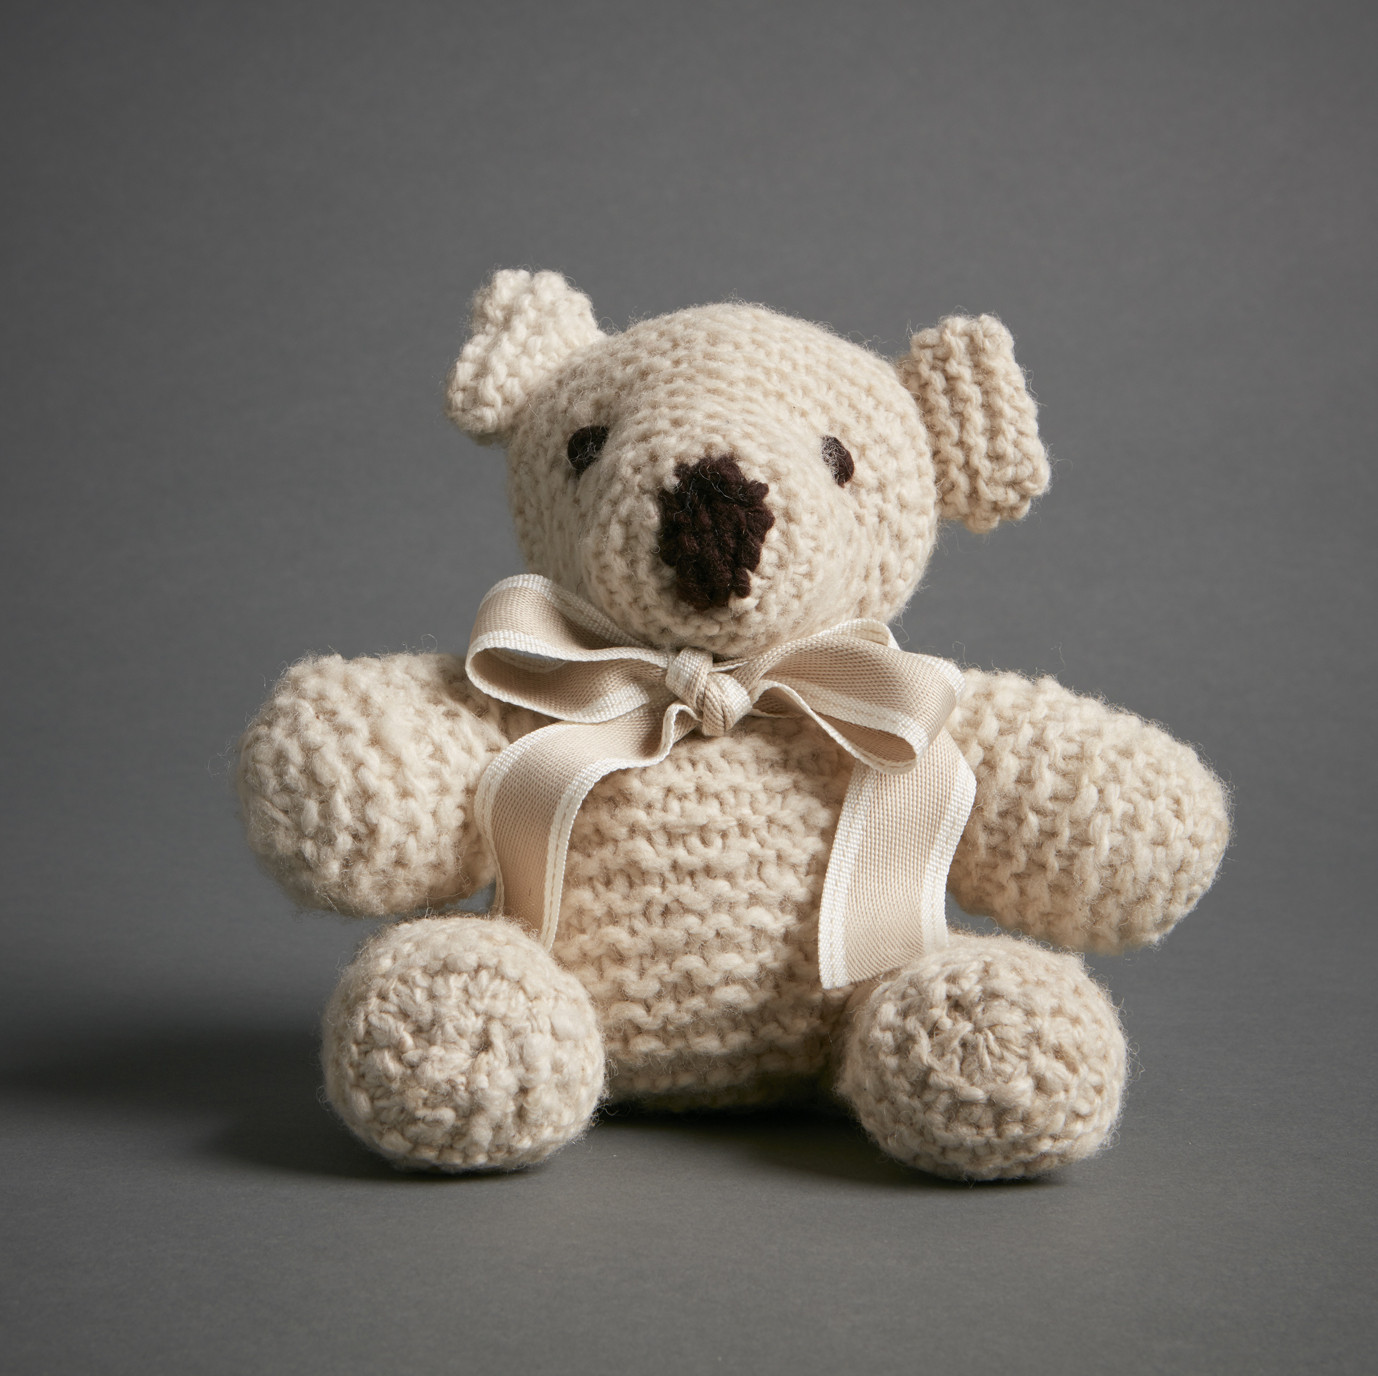 Unique Hand Knitted Teddy Bear Cream Global Sisters Knitted Teddy Bear Of Amazing 45 Ideas Knitted Teddy Bear